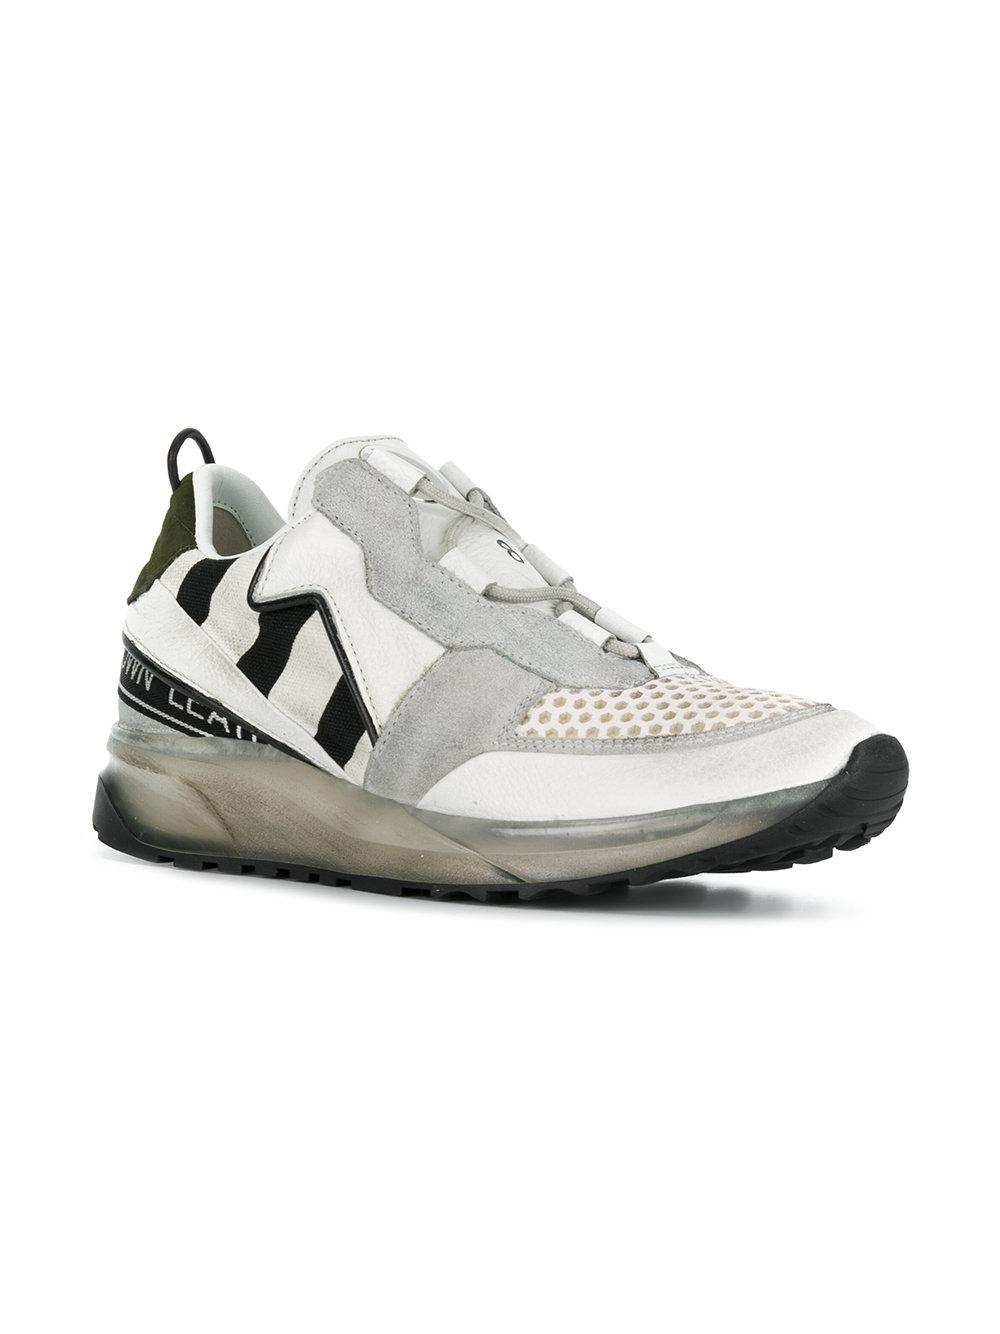 Leather Crown Cotton Maero Sneakers in White